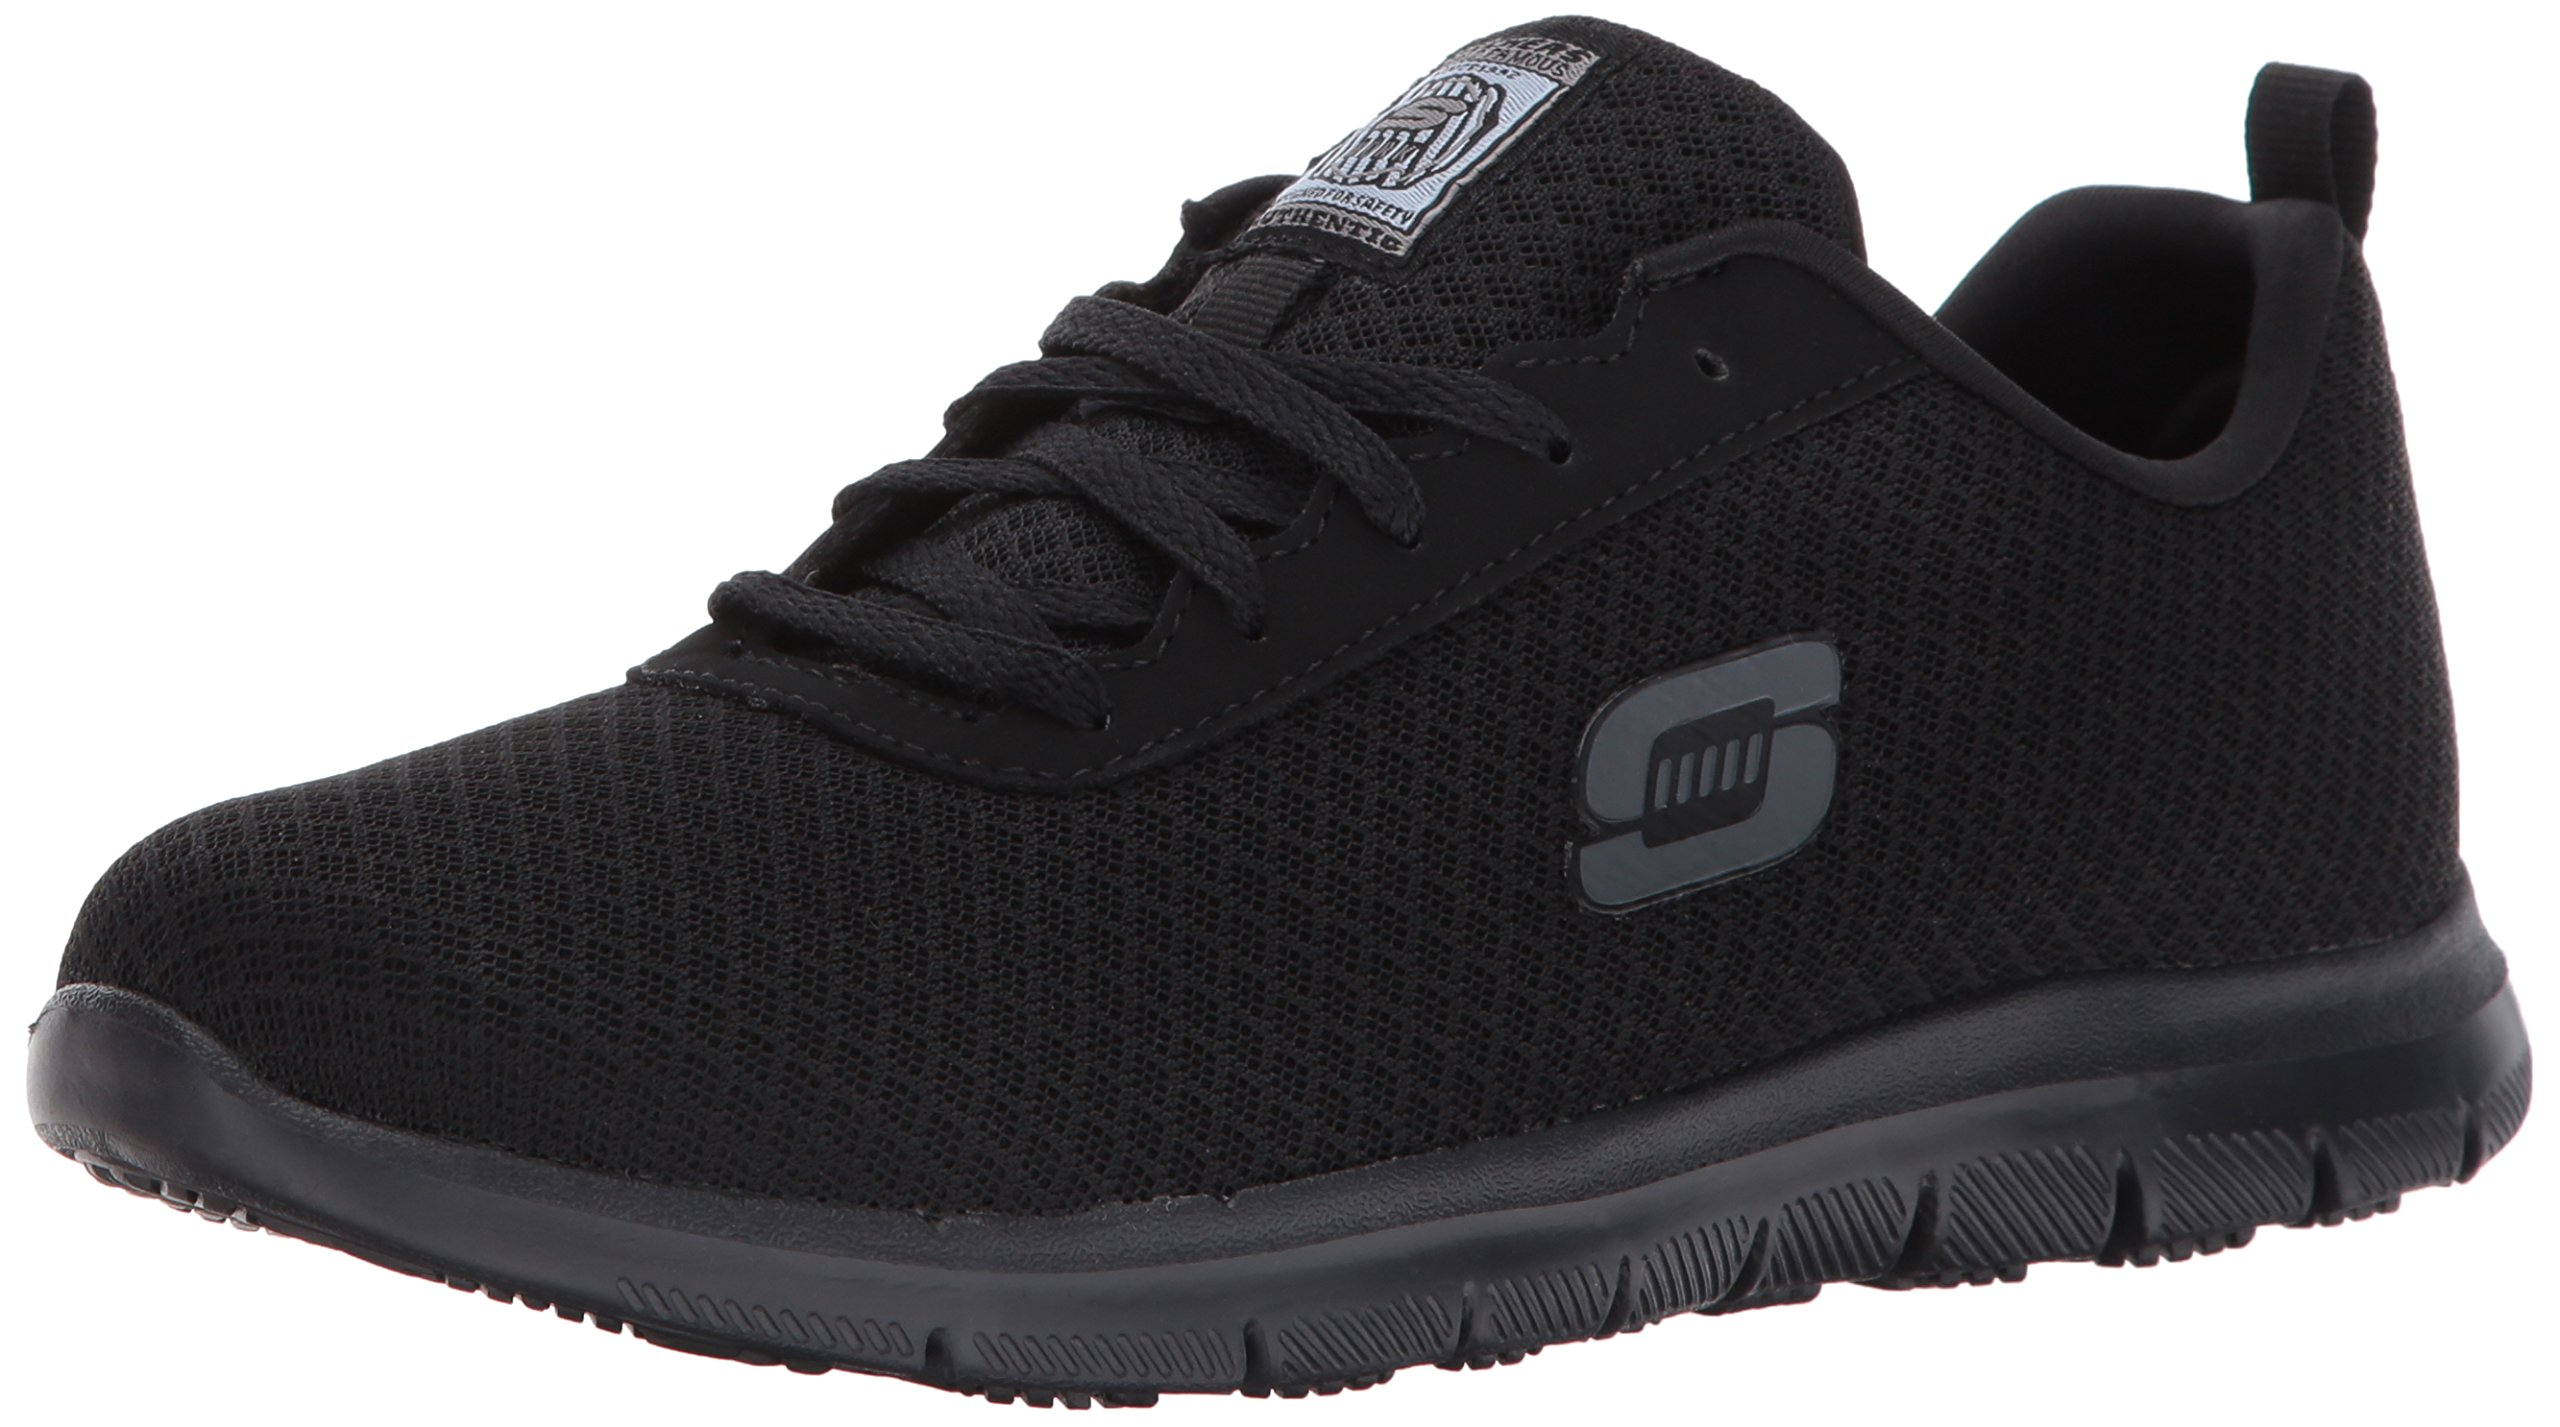 Skechers Women's Ghenter Bronaugh Food Service Shoe, Black, 8 Wide US by Skechers